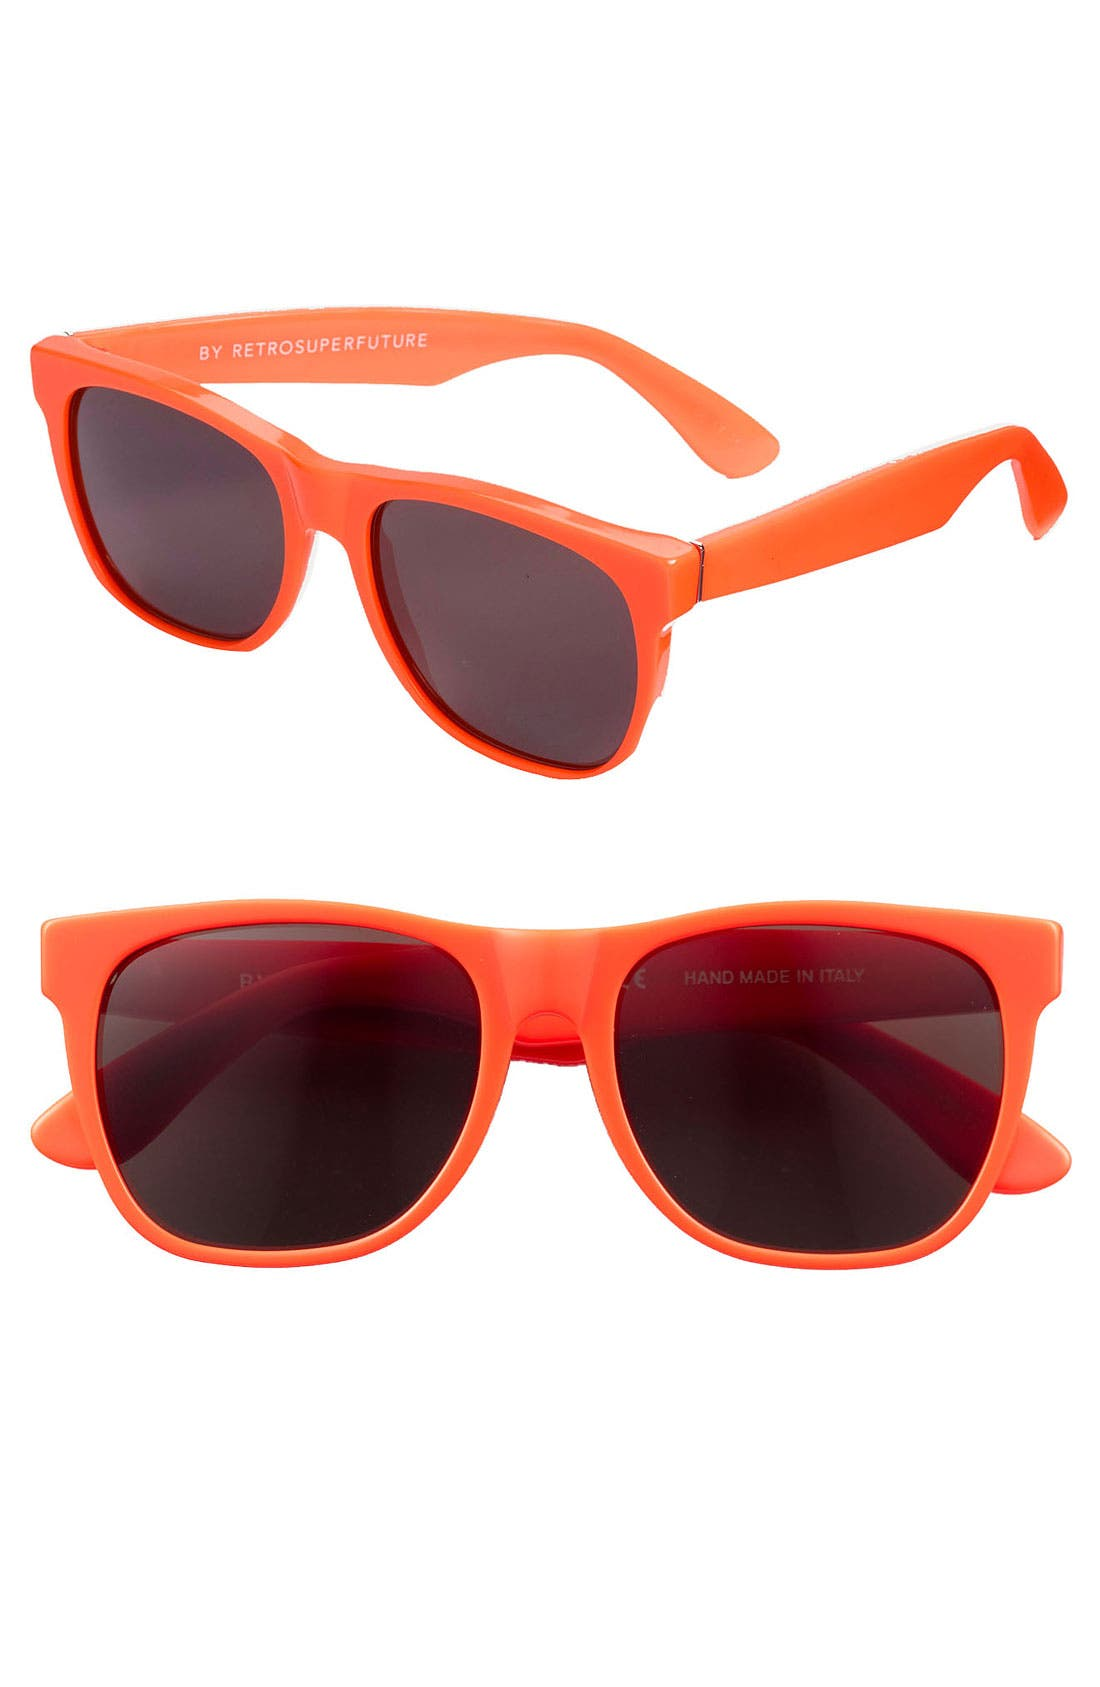 Main Image - SUPER by RETROSUPERFUTURE® 'Classic' 55mm Sunglasses